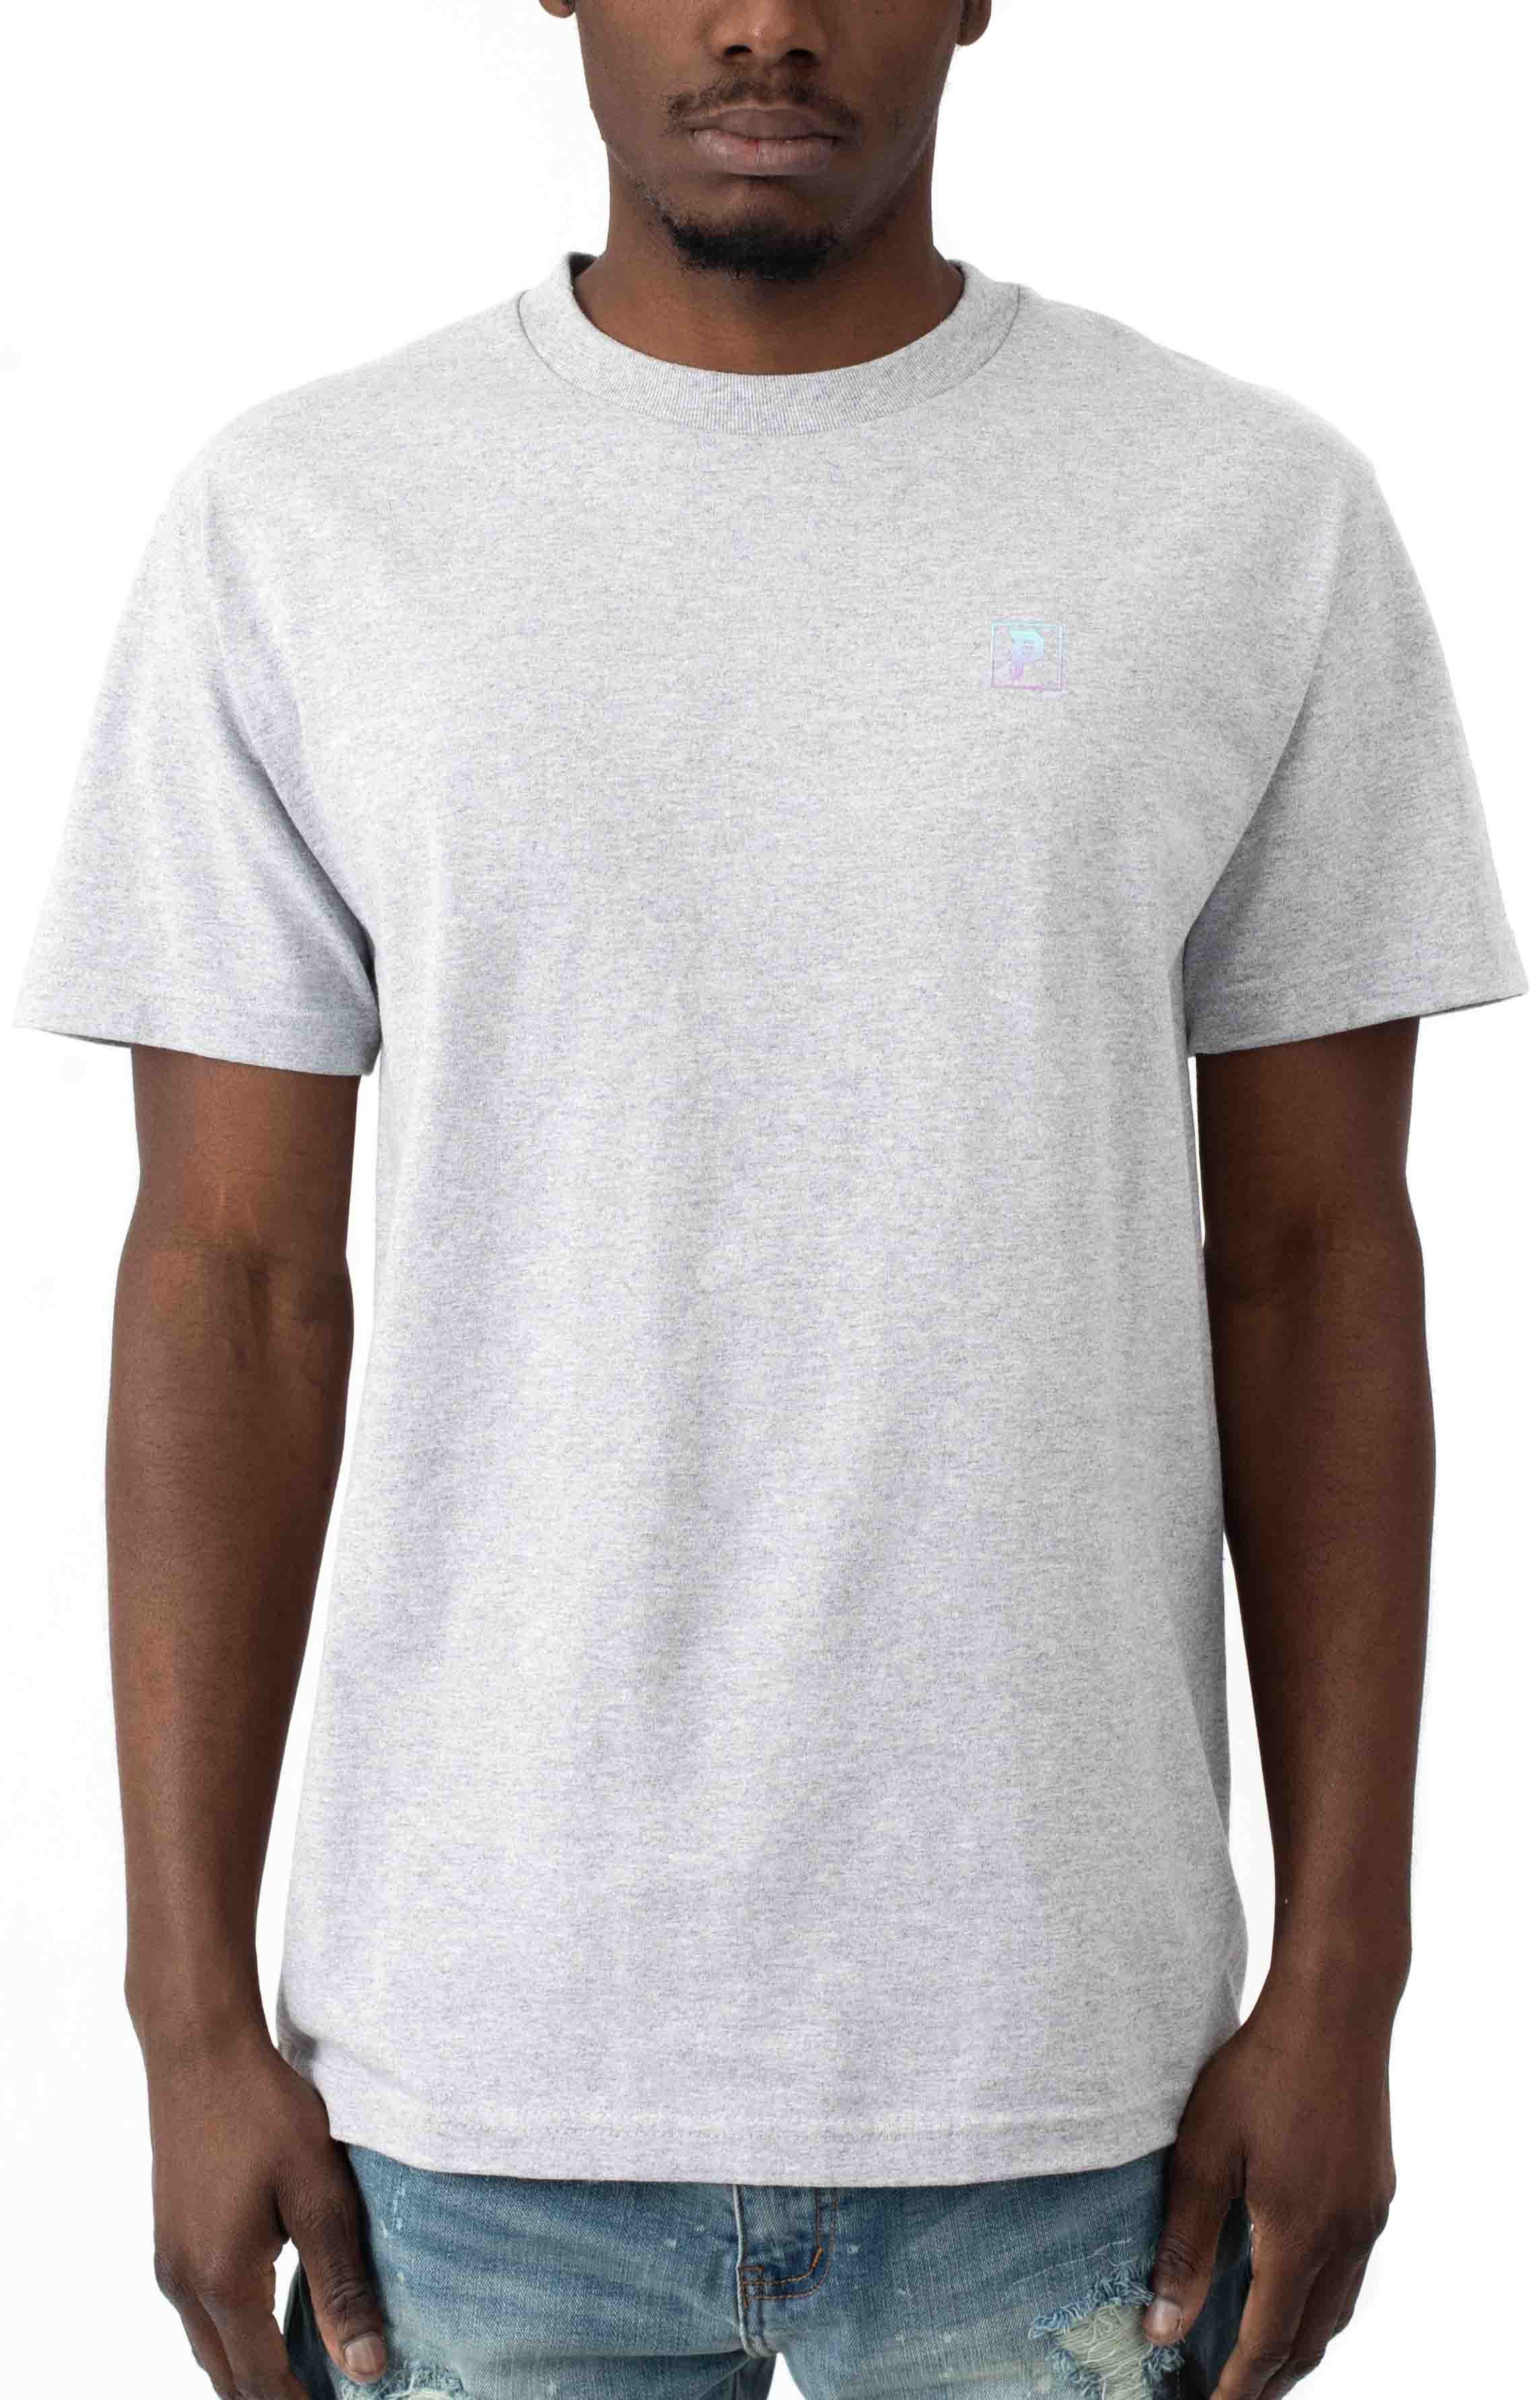 Dirty P Humming T-Shirt - Athletic Heather  2